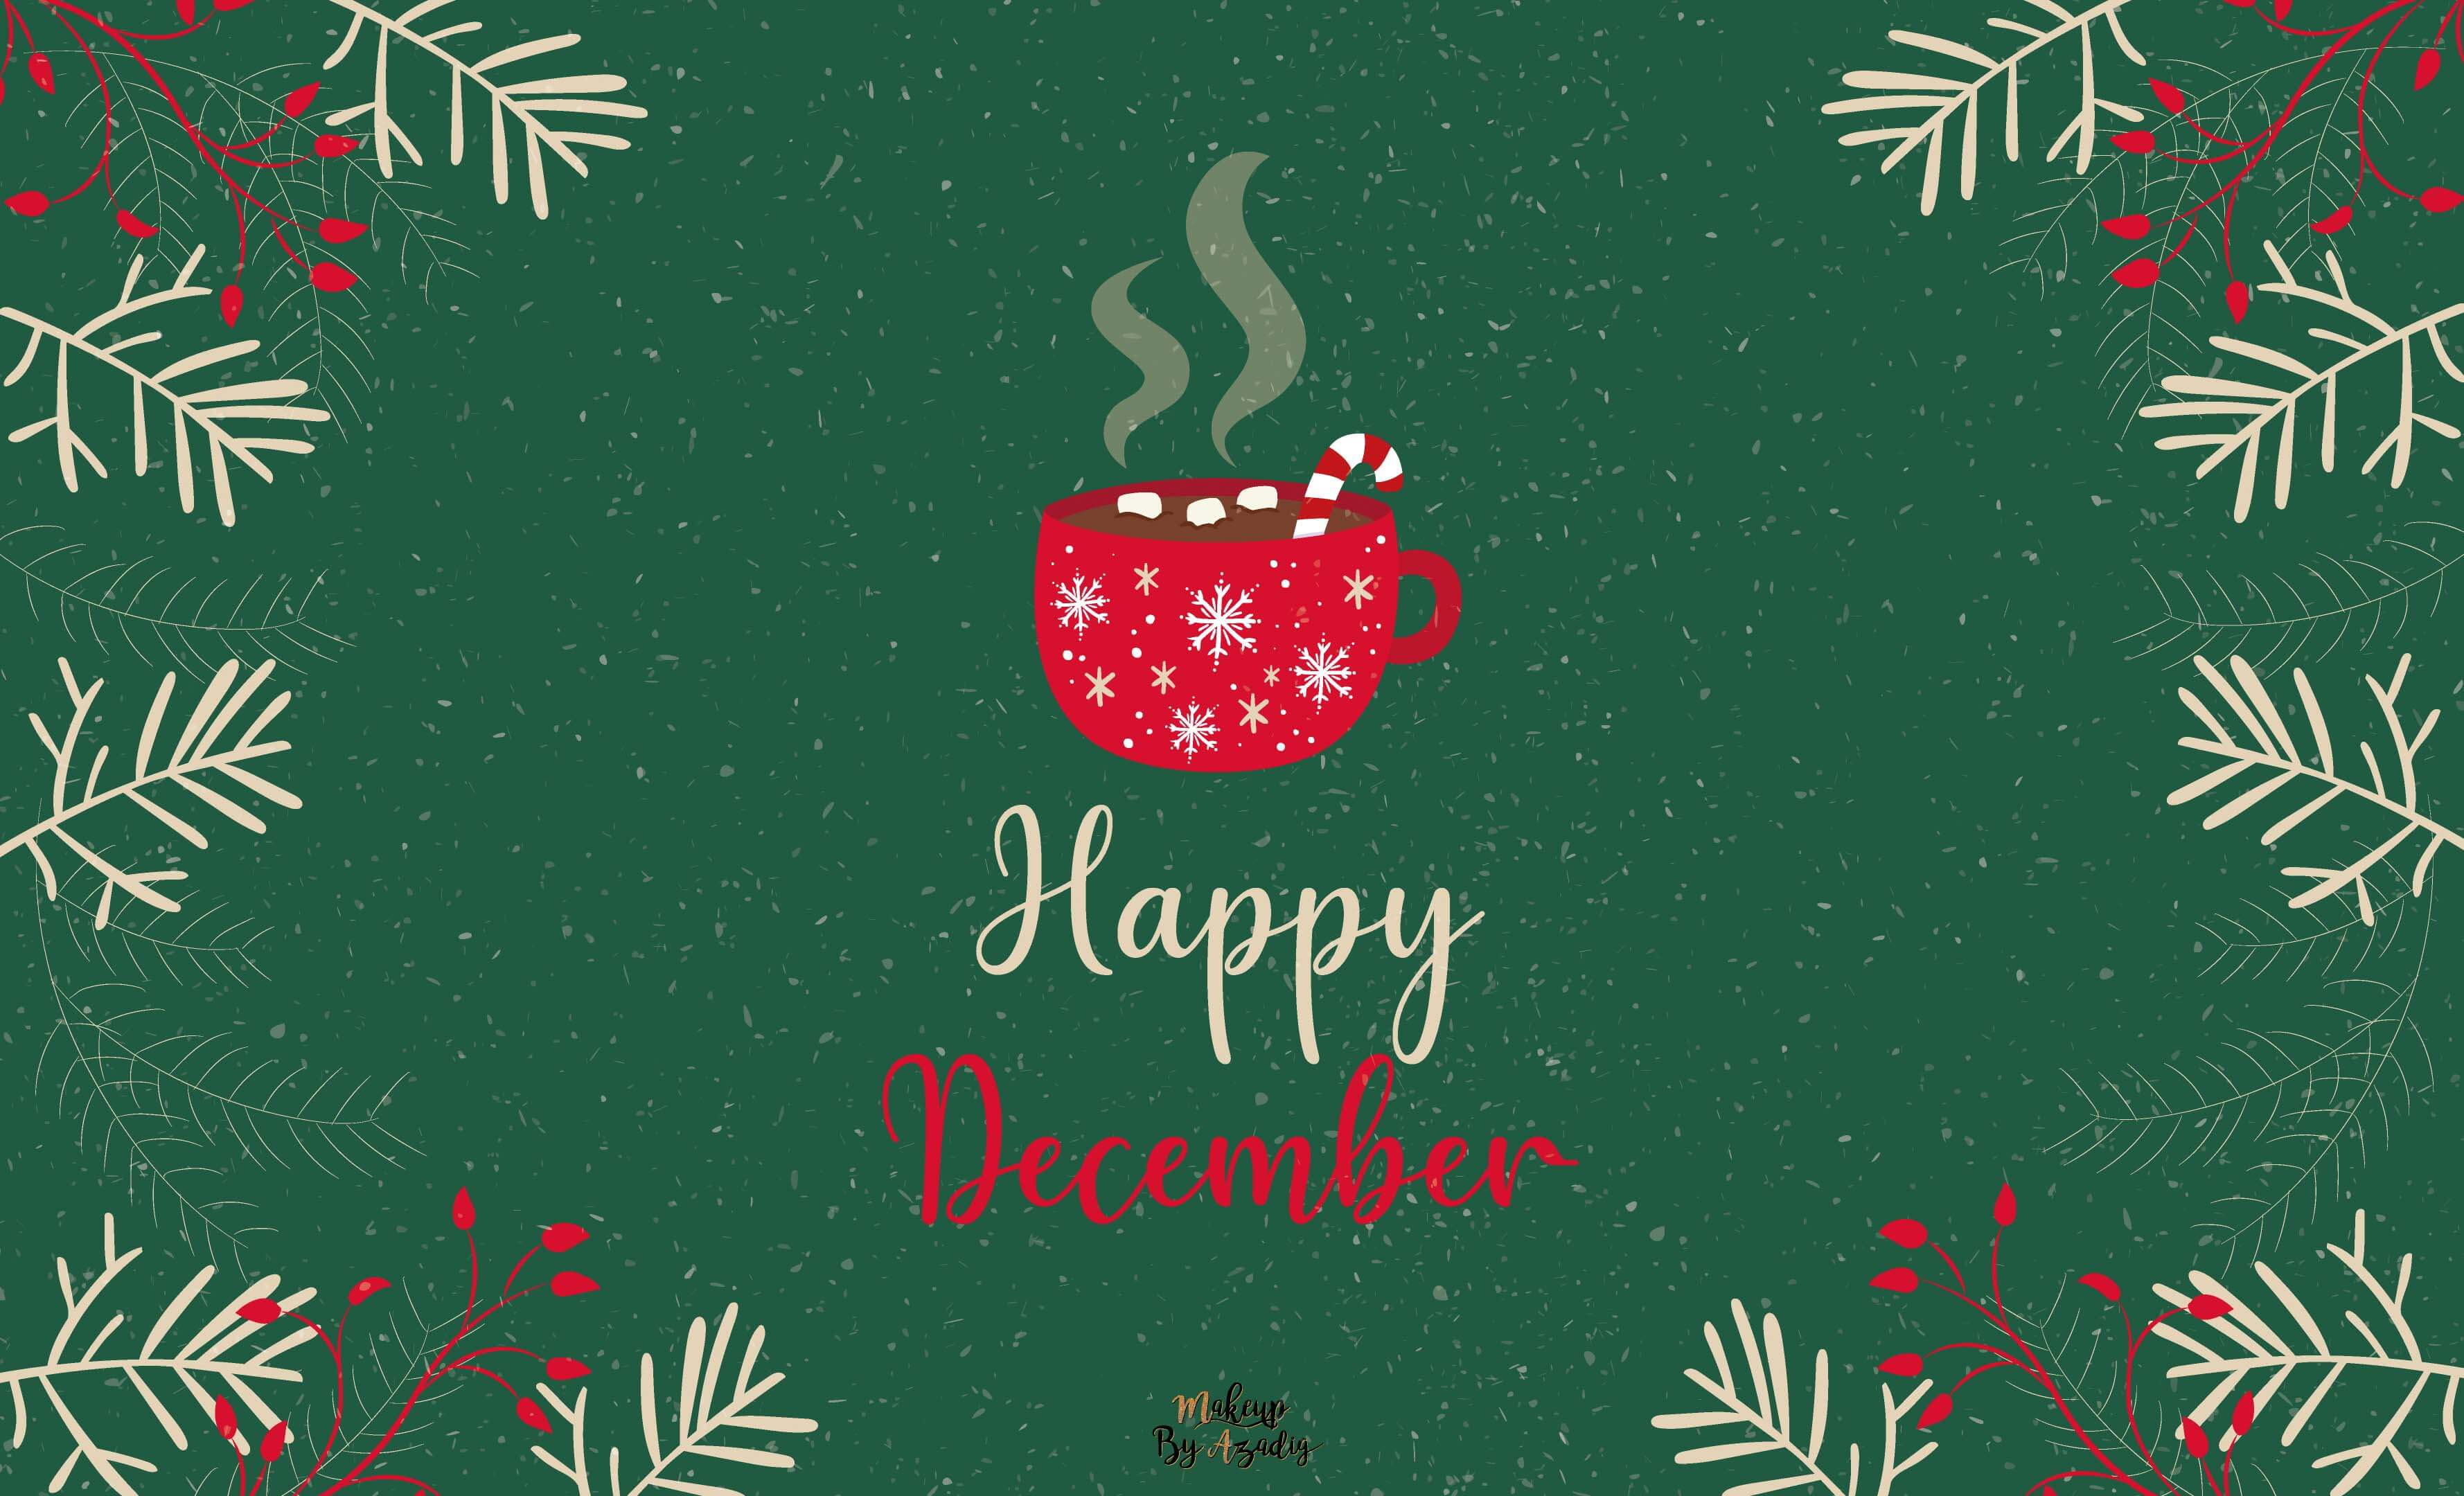 22 Fond D Ecran Happy December Wallpaper Makeupbyazadig